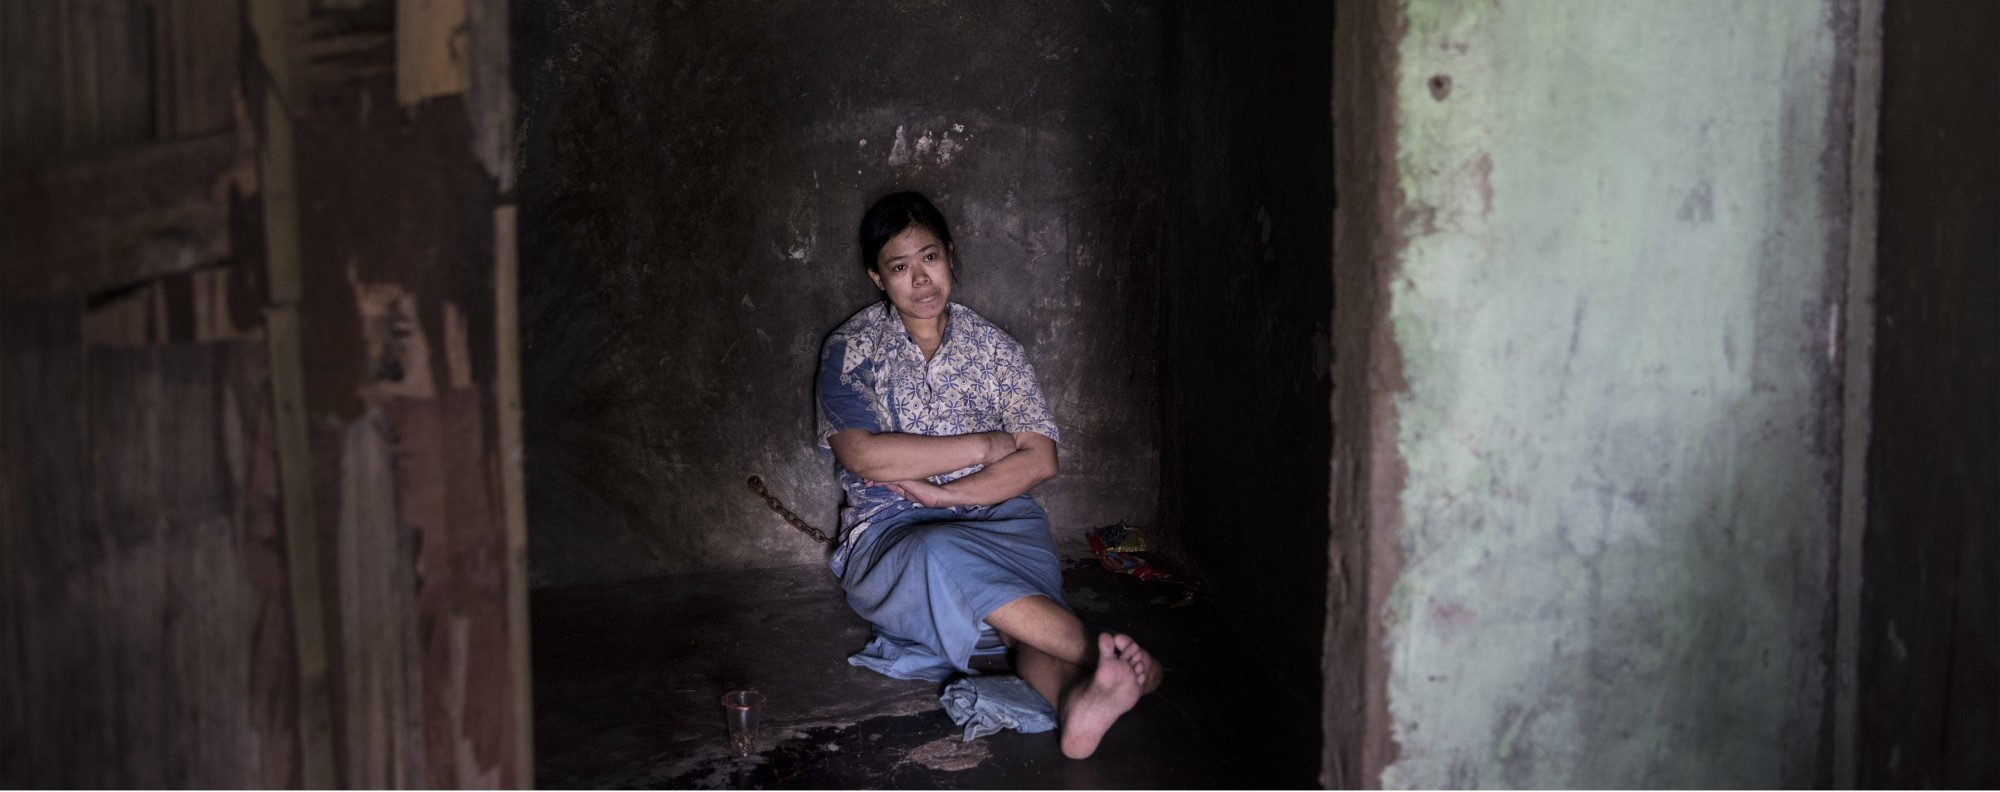 Ernawati is chained to a wall in her house in Indonesia. Picture: Miguel Candela